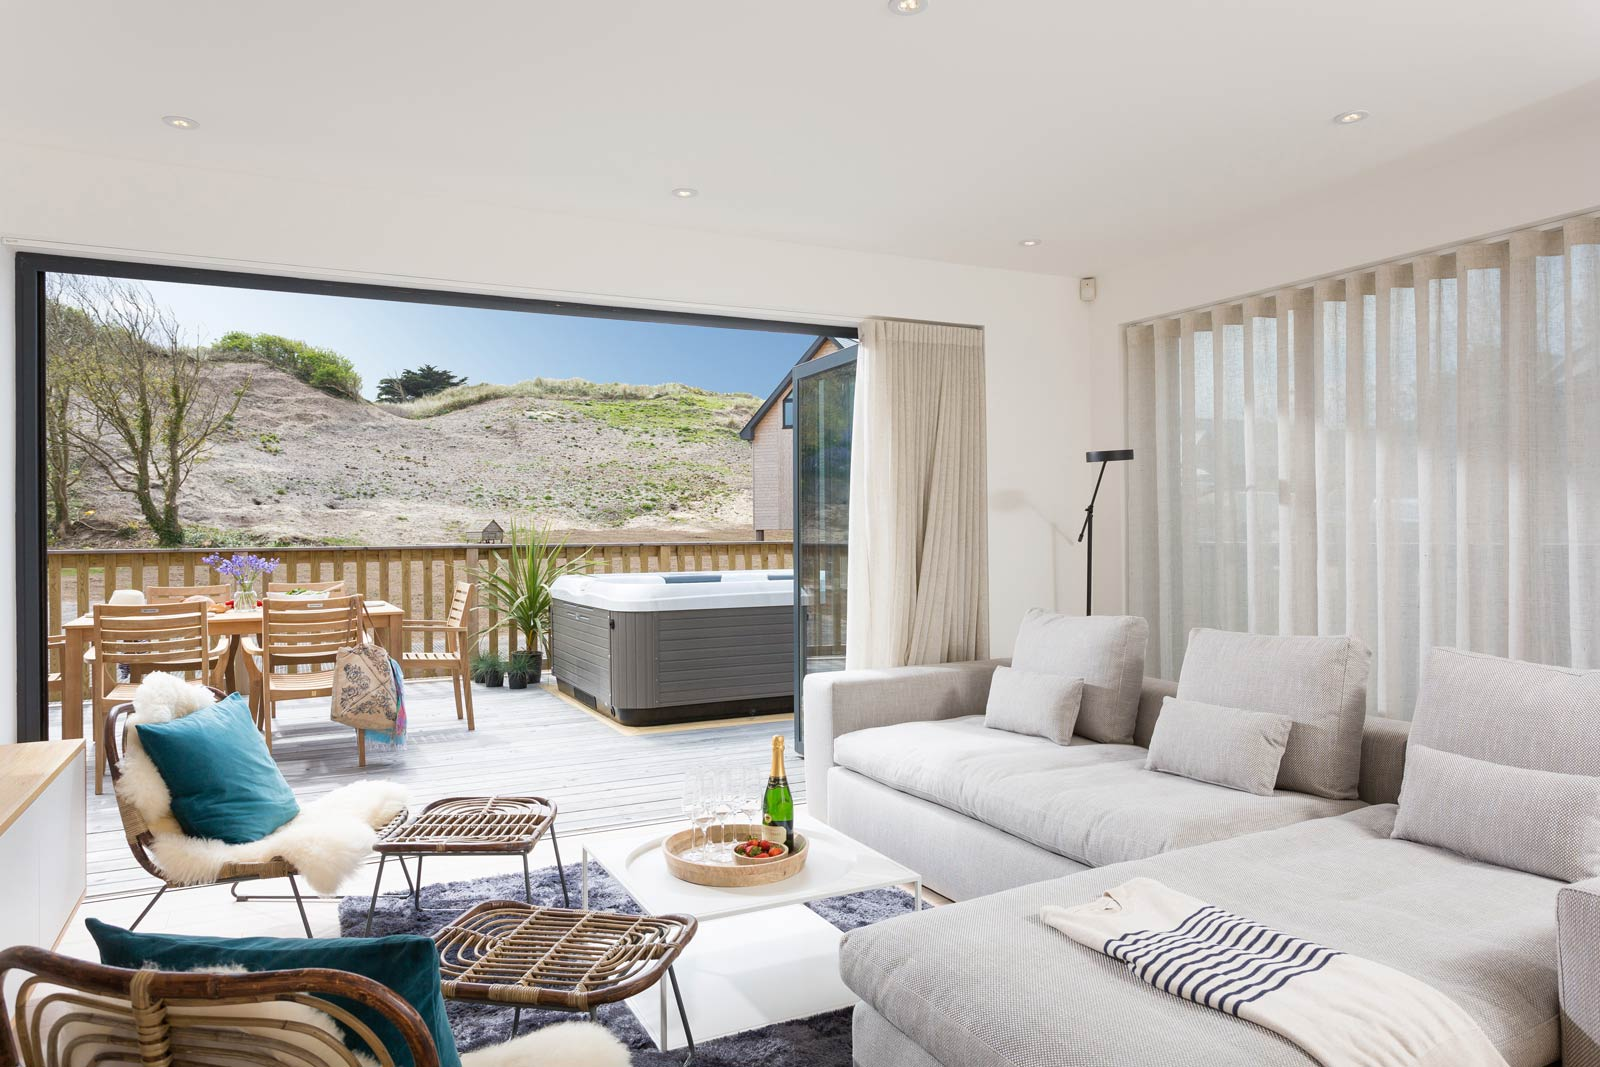 Laurence associates tourism project luxury beach lodges - Location de vacances cornwall laurence associates ...